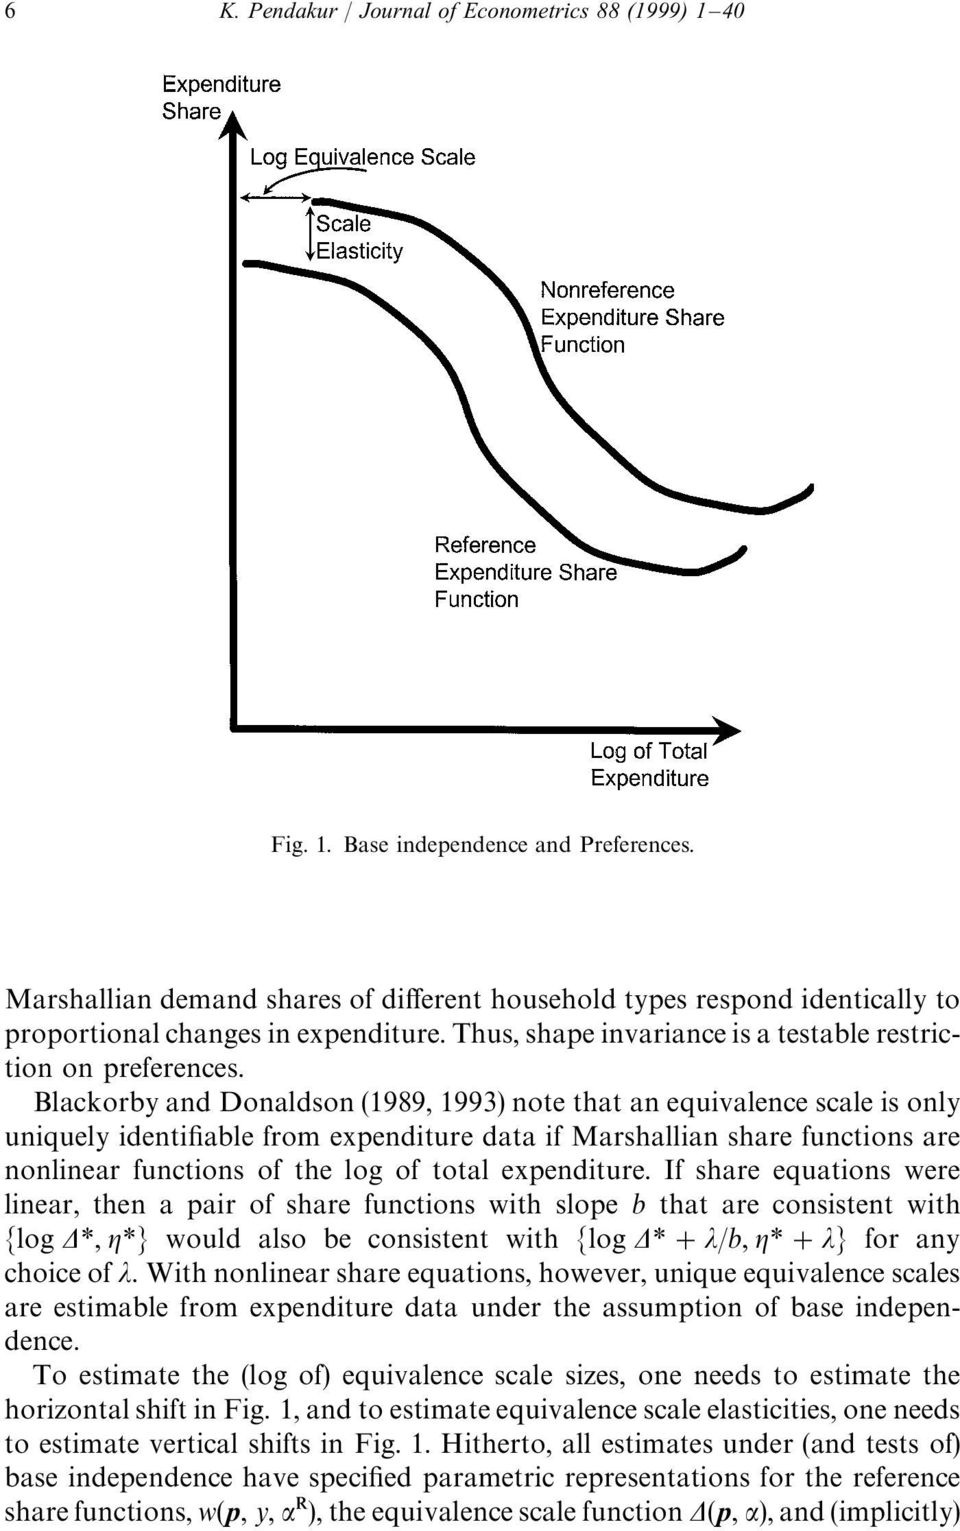 Blackorby and Donaldson (1989, 1993) note that an equivalence scale is only uniquely identifiable from expenditure data if Marshallian share functions are nonlinear functions of the log of total